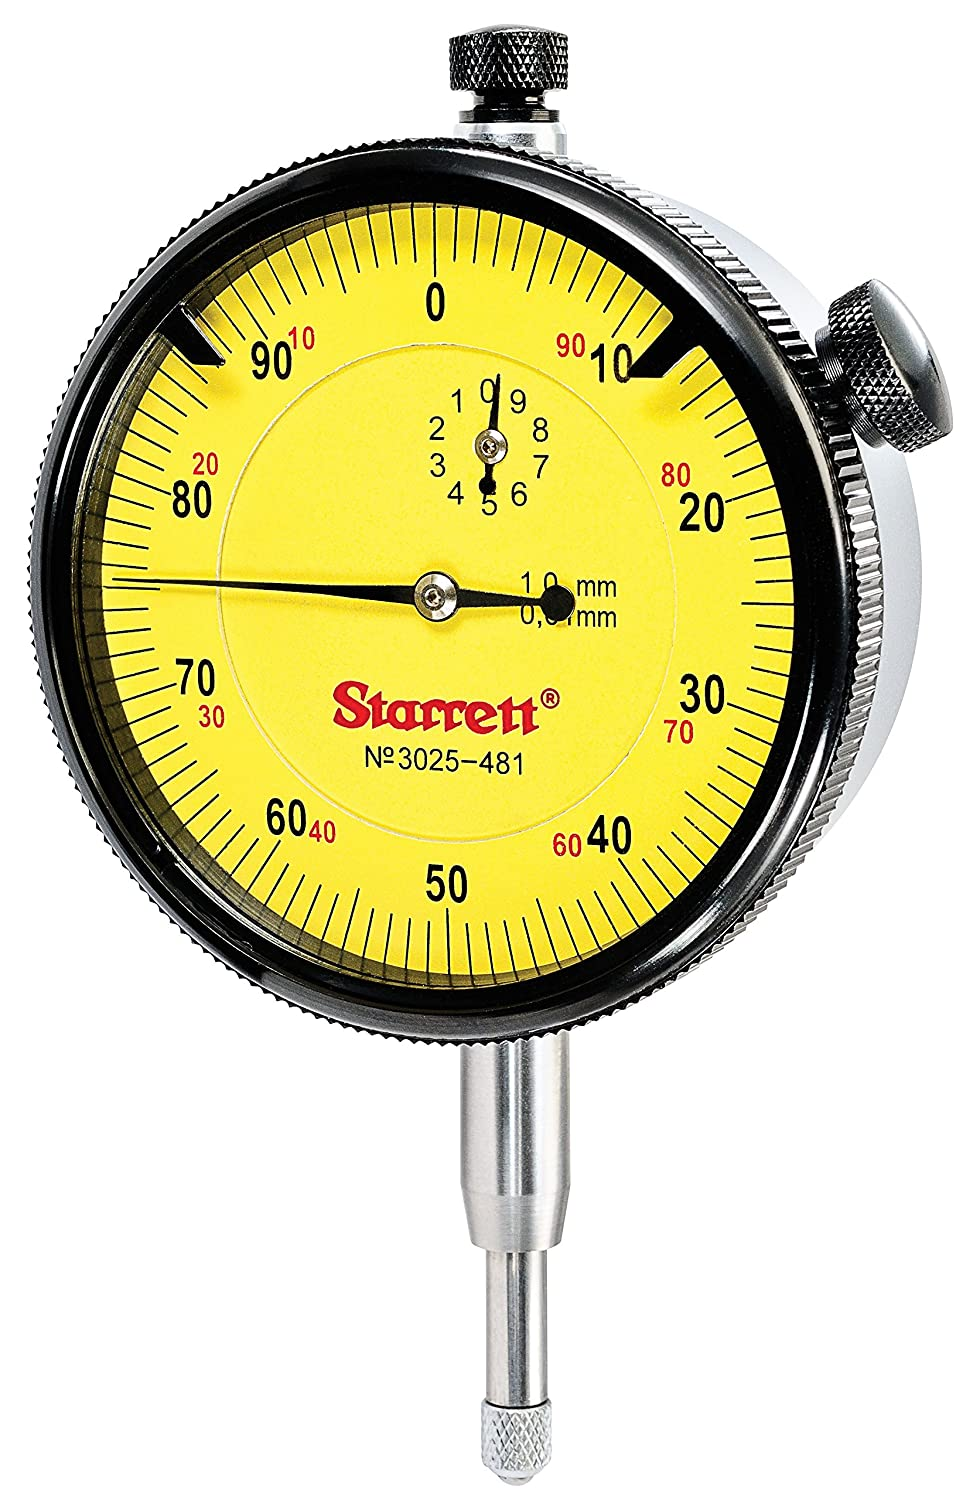 Starrett 3025-481 Dial Indicator Range: 10mm, Dial Reading: 0-100